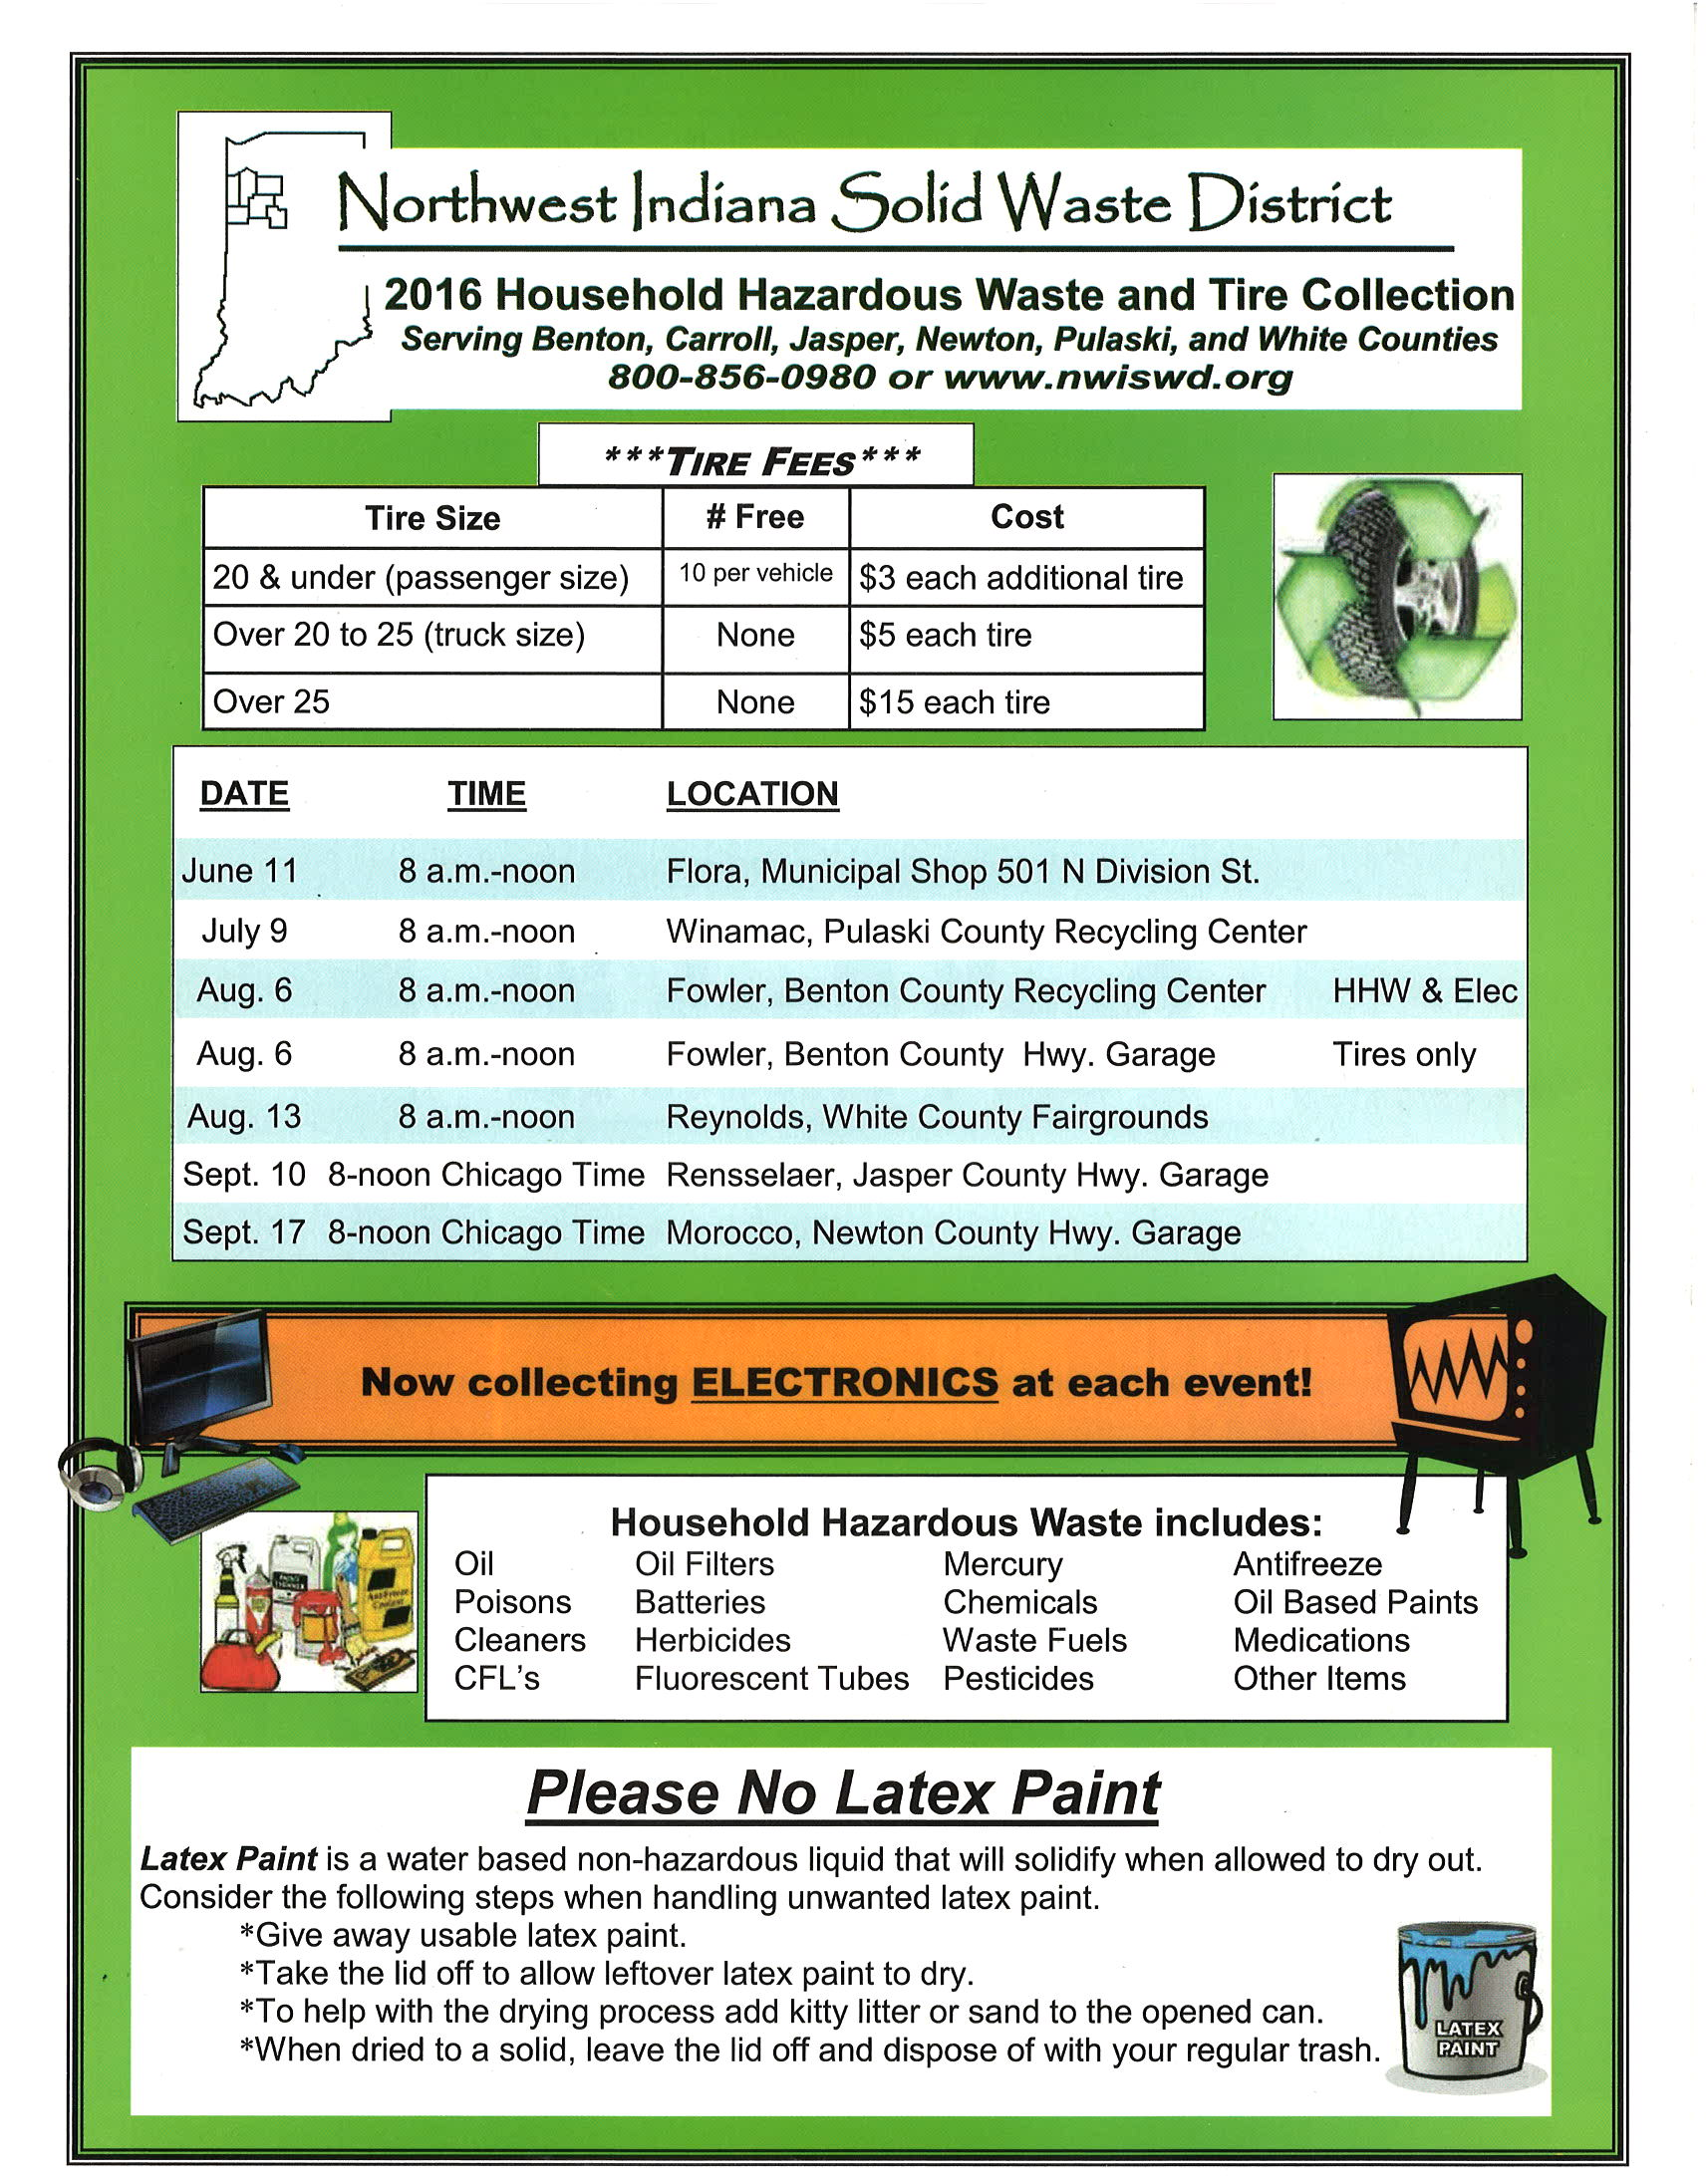 2016 Household Hazardous Waste and Tire Collection